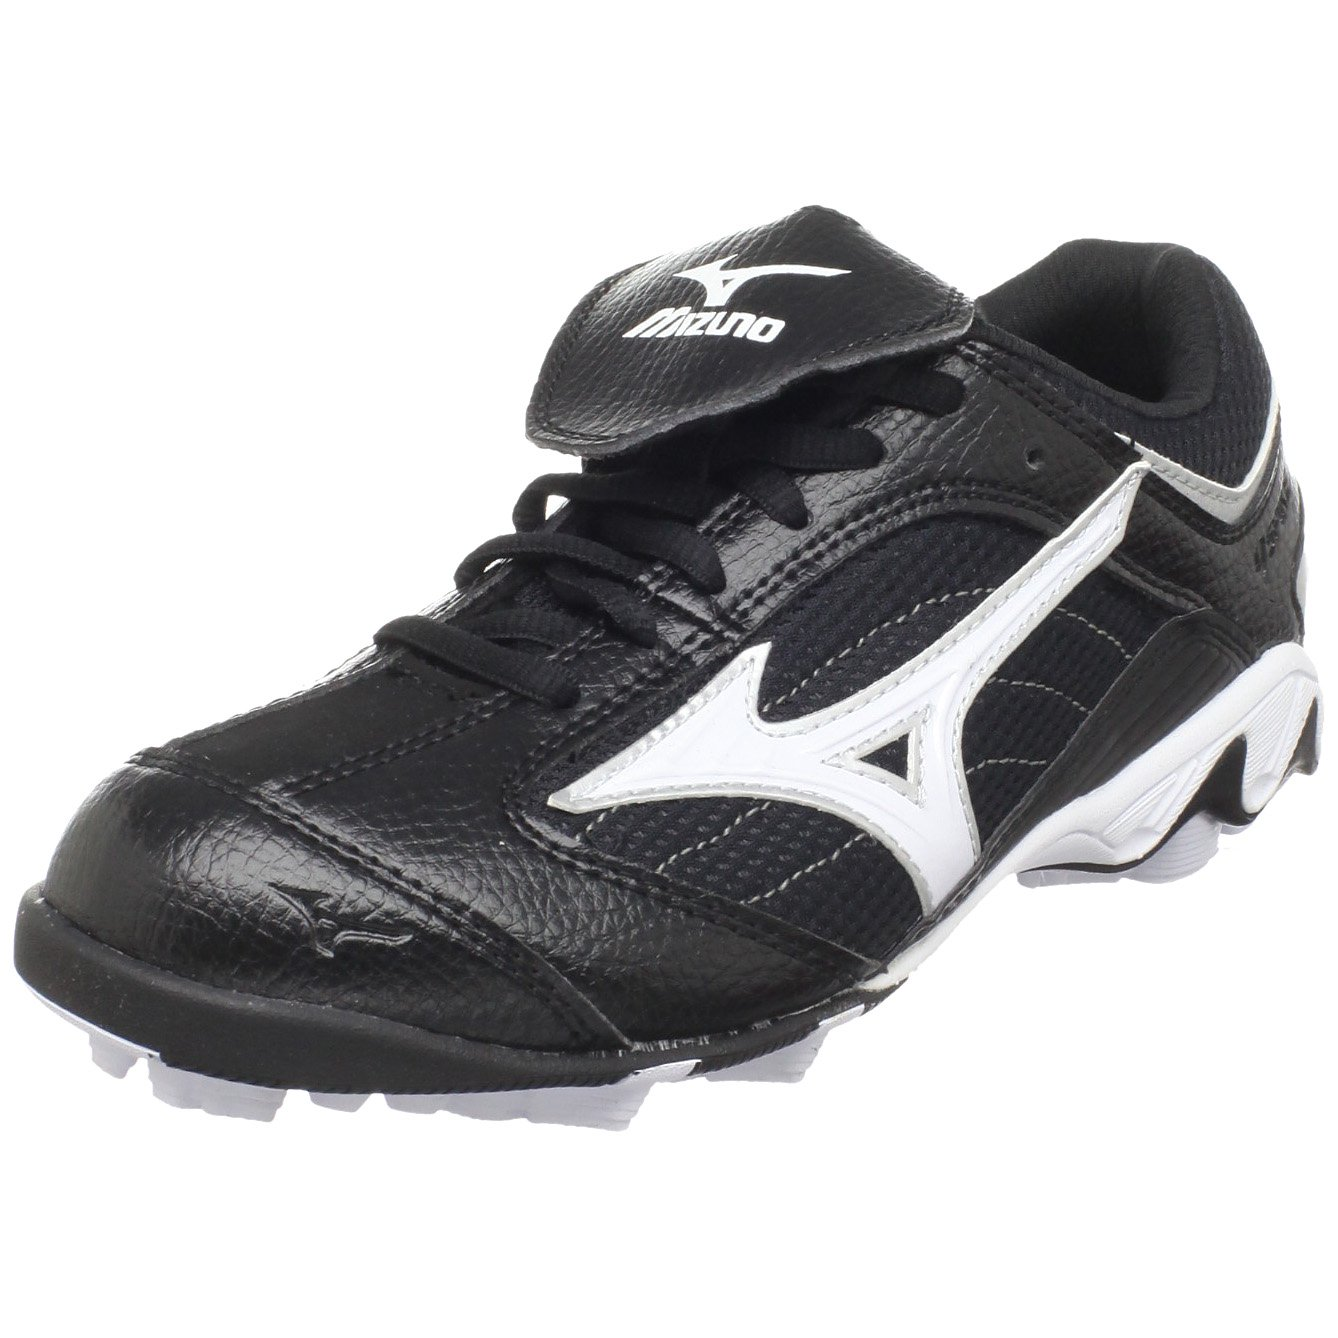 Mizuno 9-Spike Franchise Low G5 Baseball Cleat (Little Kid/Big Kid) 320345